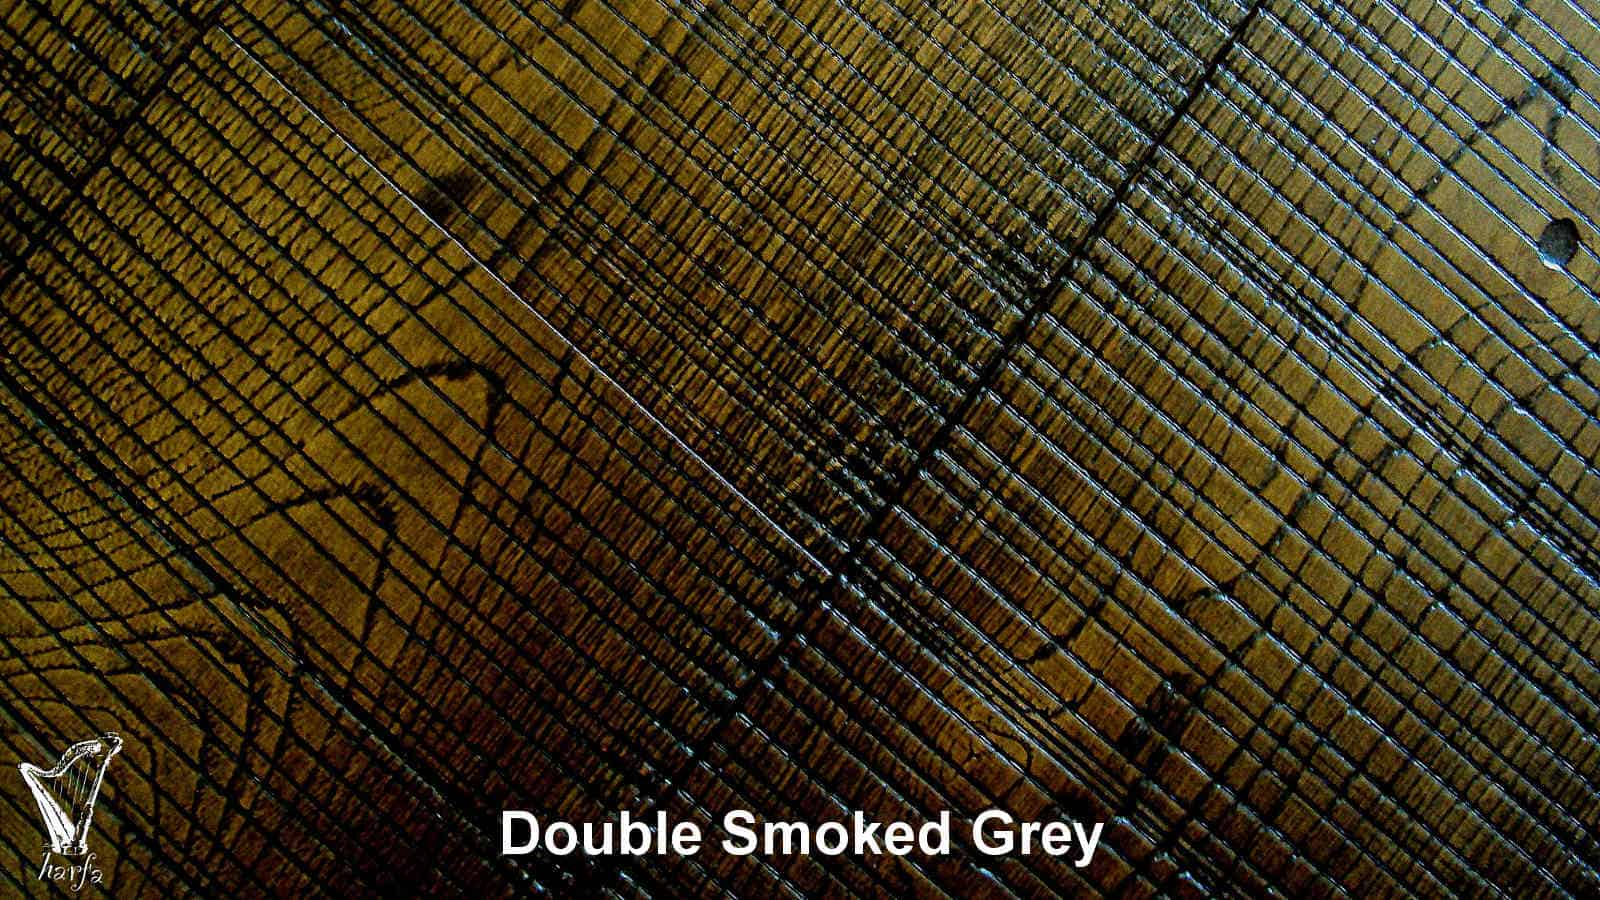 Kolekcja: ESCO Harfa, Kolor: Double Smoked Grey